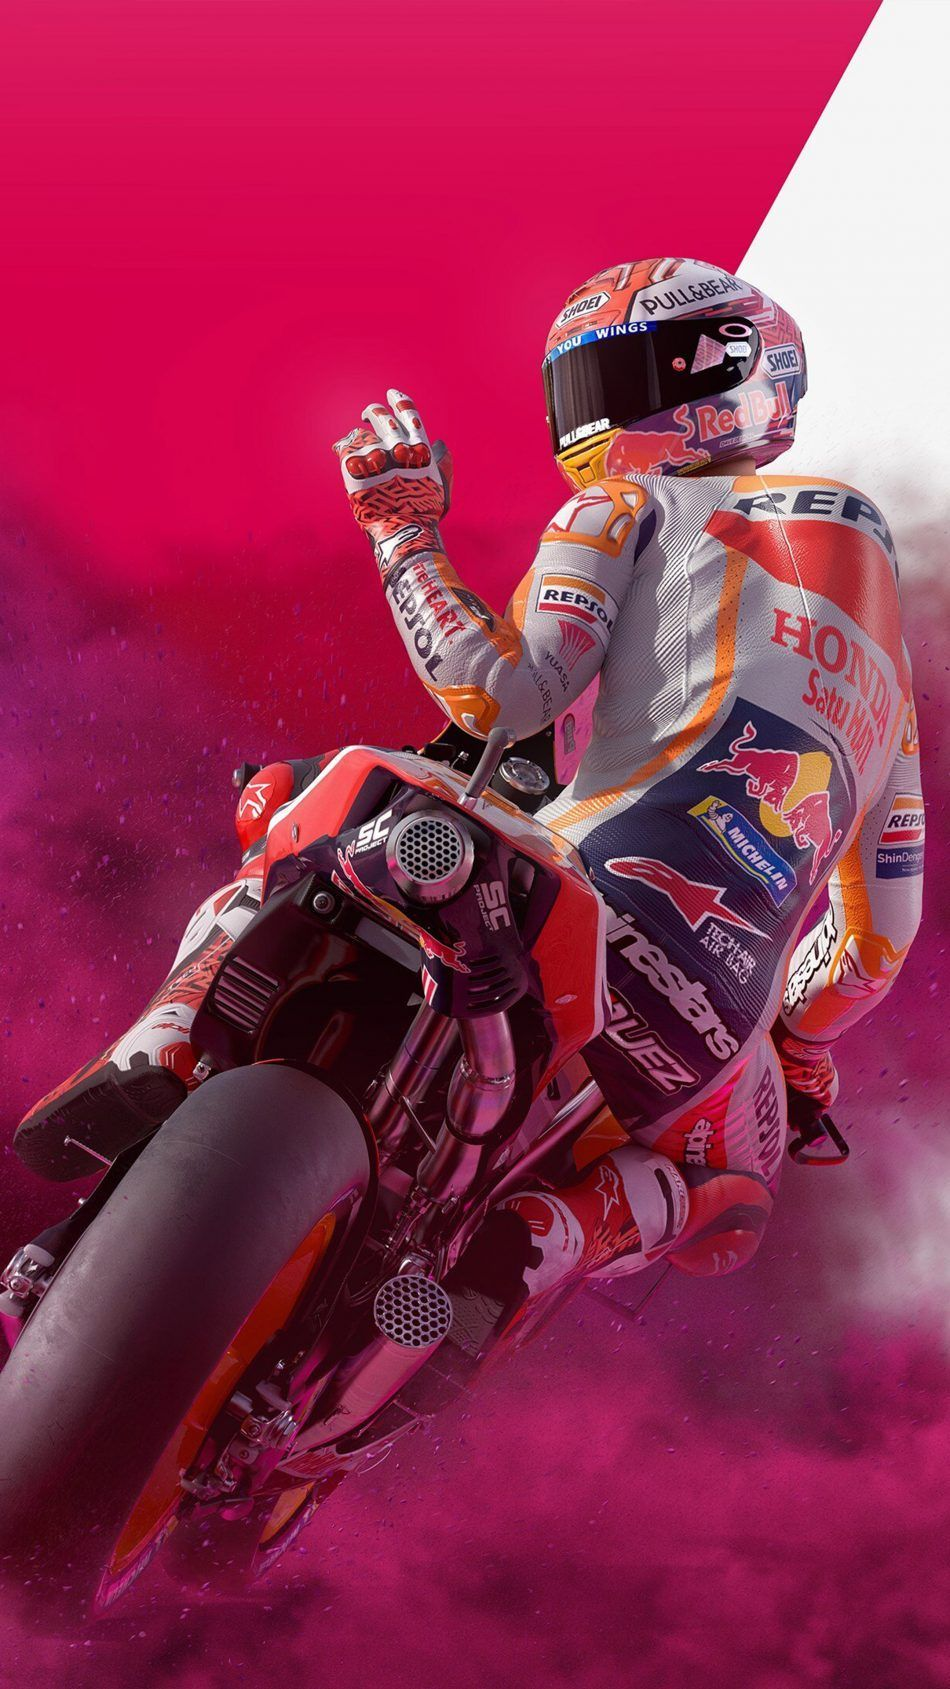 Motogp 19 Game 4k Mobile Wallpaper Marc Marquez Motogp